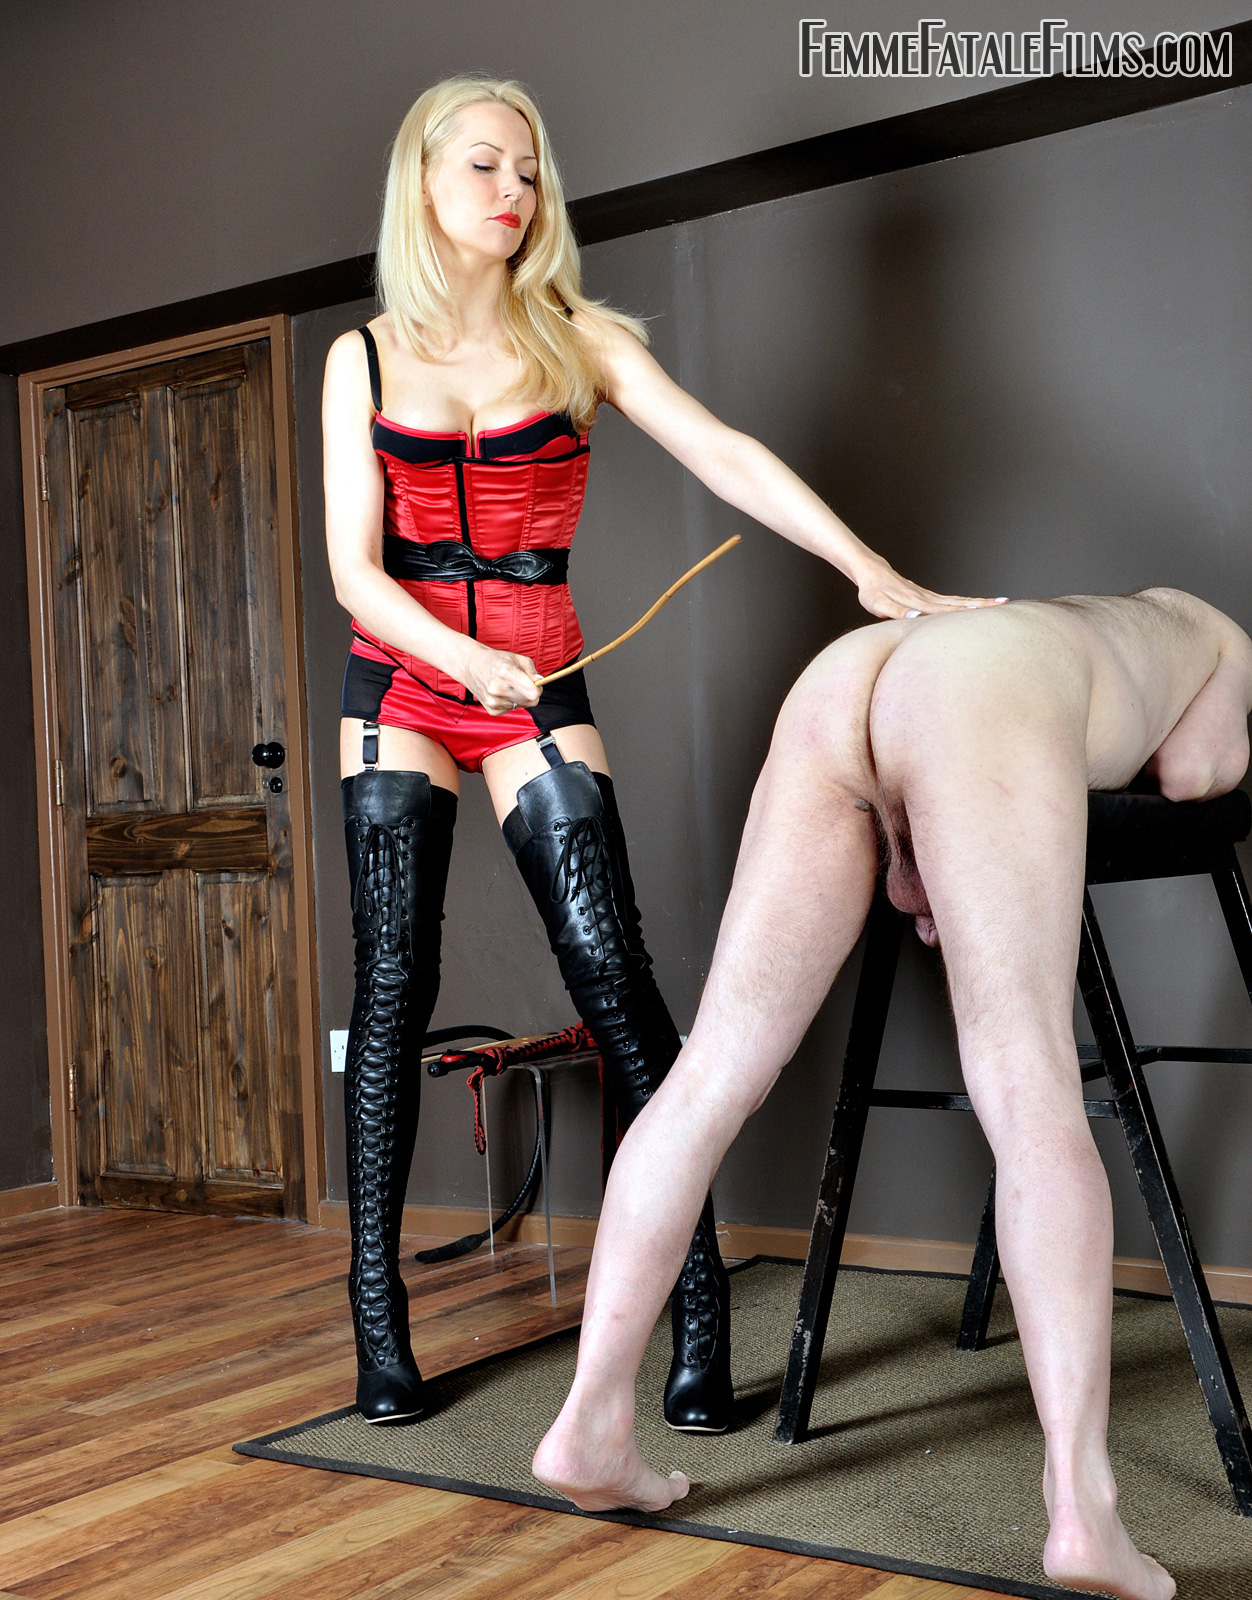 Caught Playing With Himself! Should He Be Punished? (chastity)